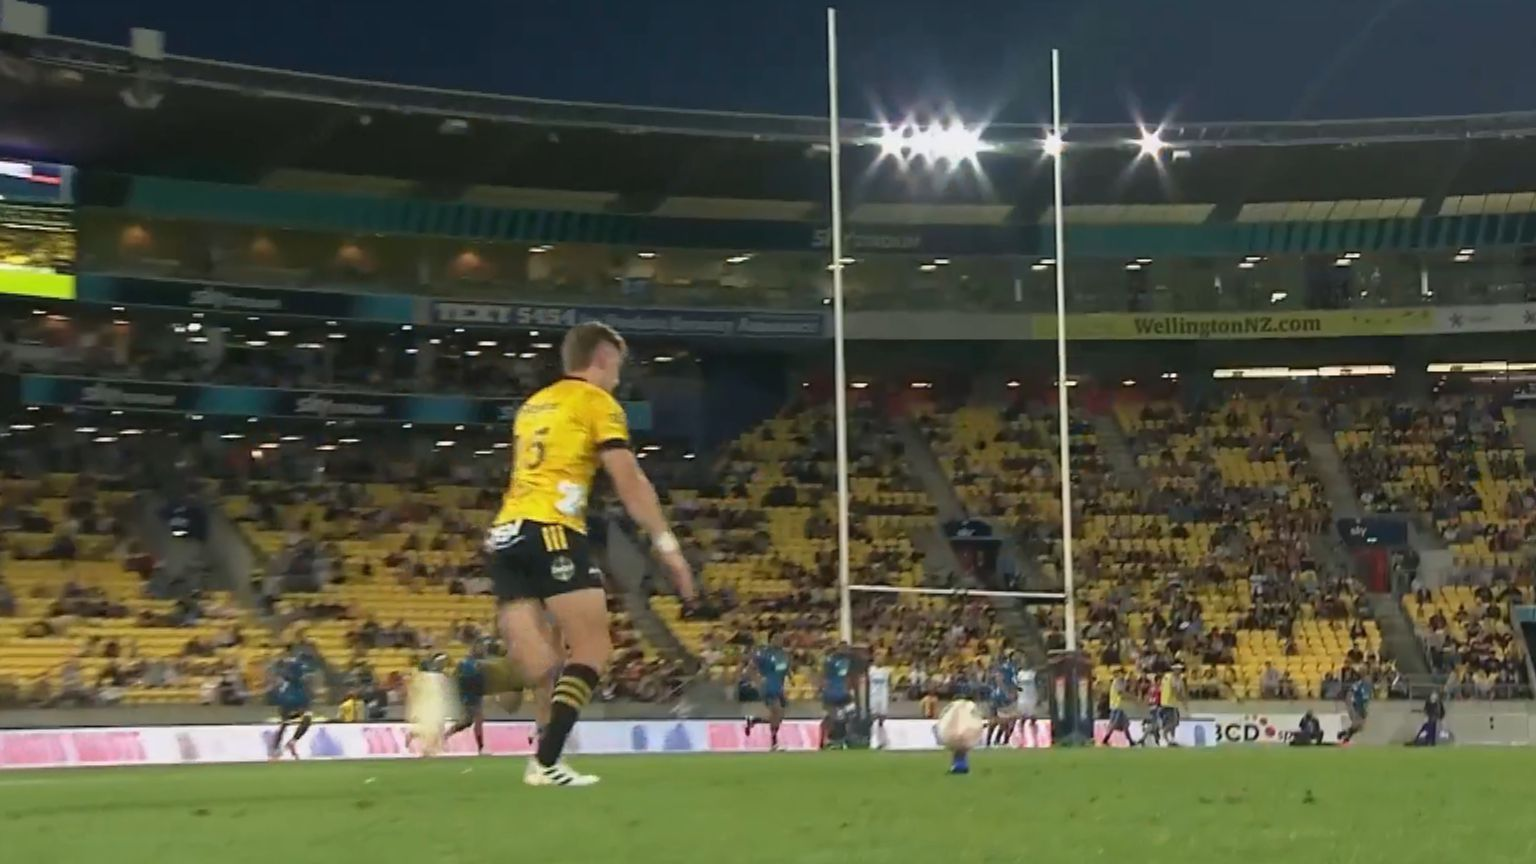 Blues beat Hurricanes in Super Rugby Aotearoa after bizarre decision robs Jordie Barrett